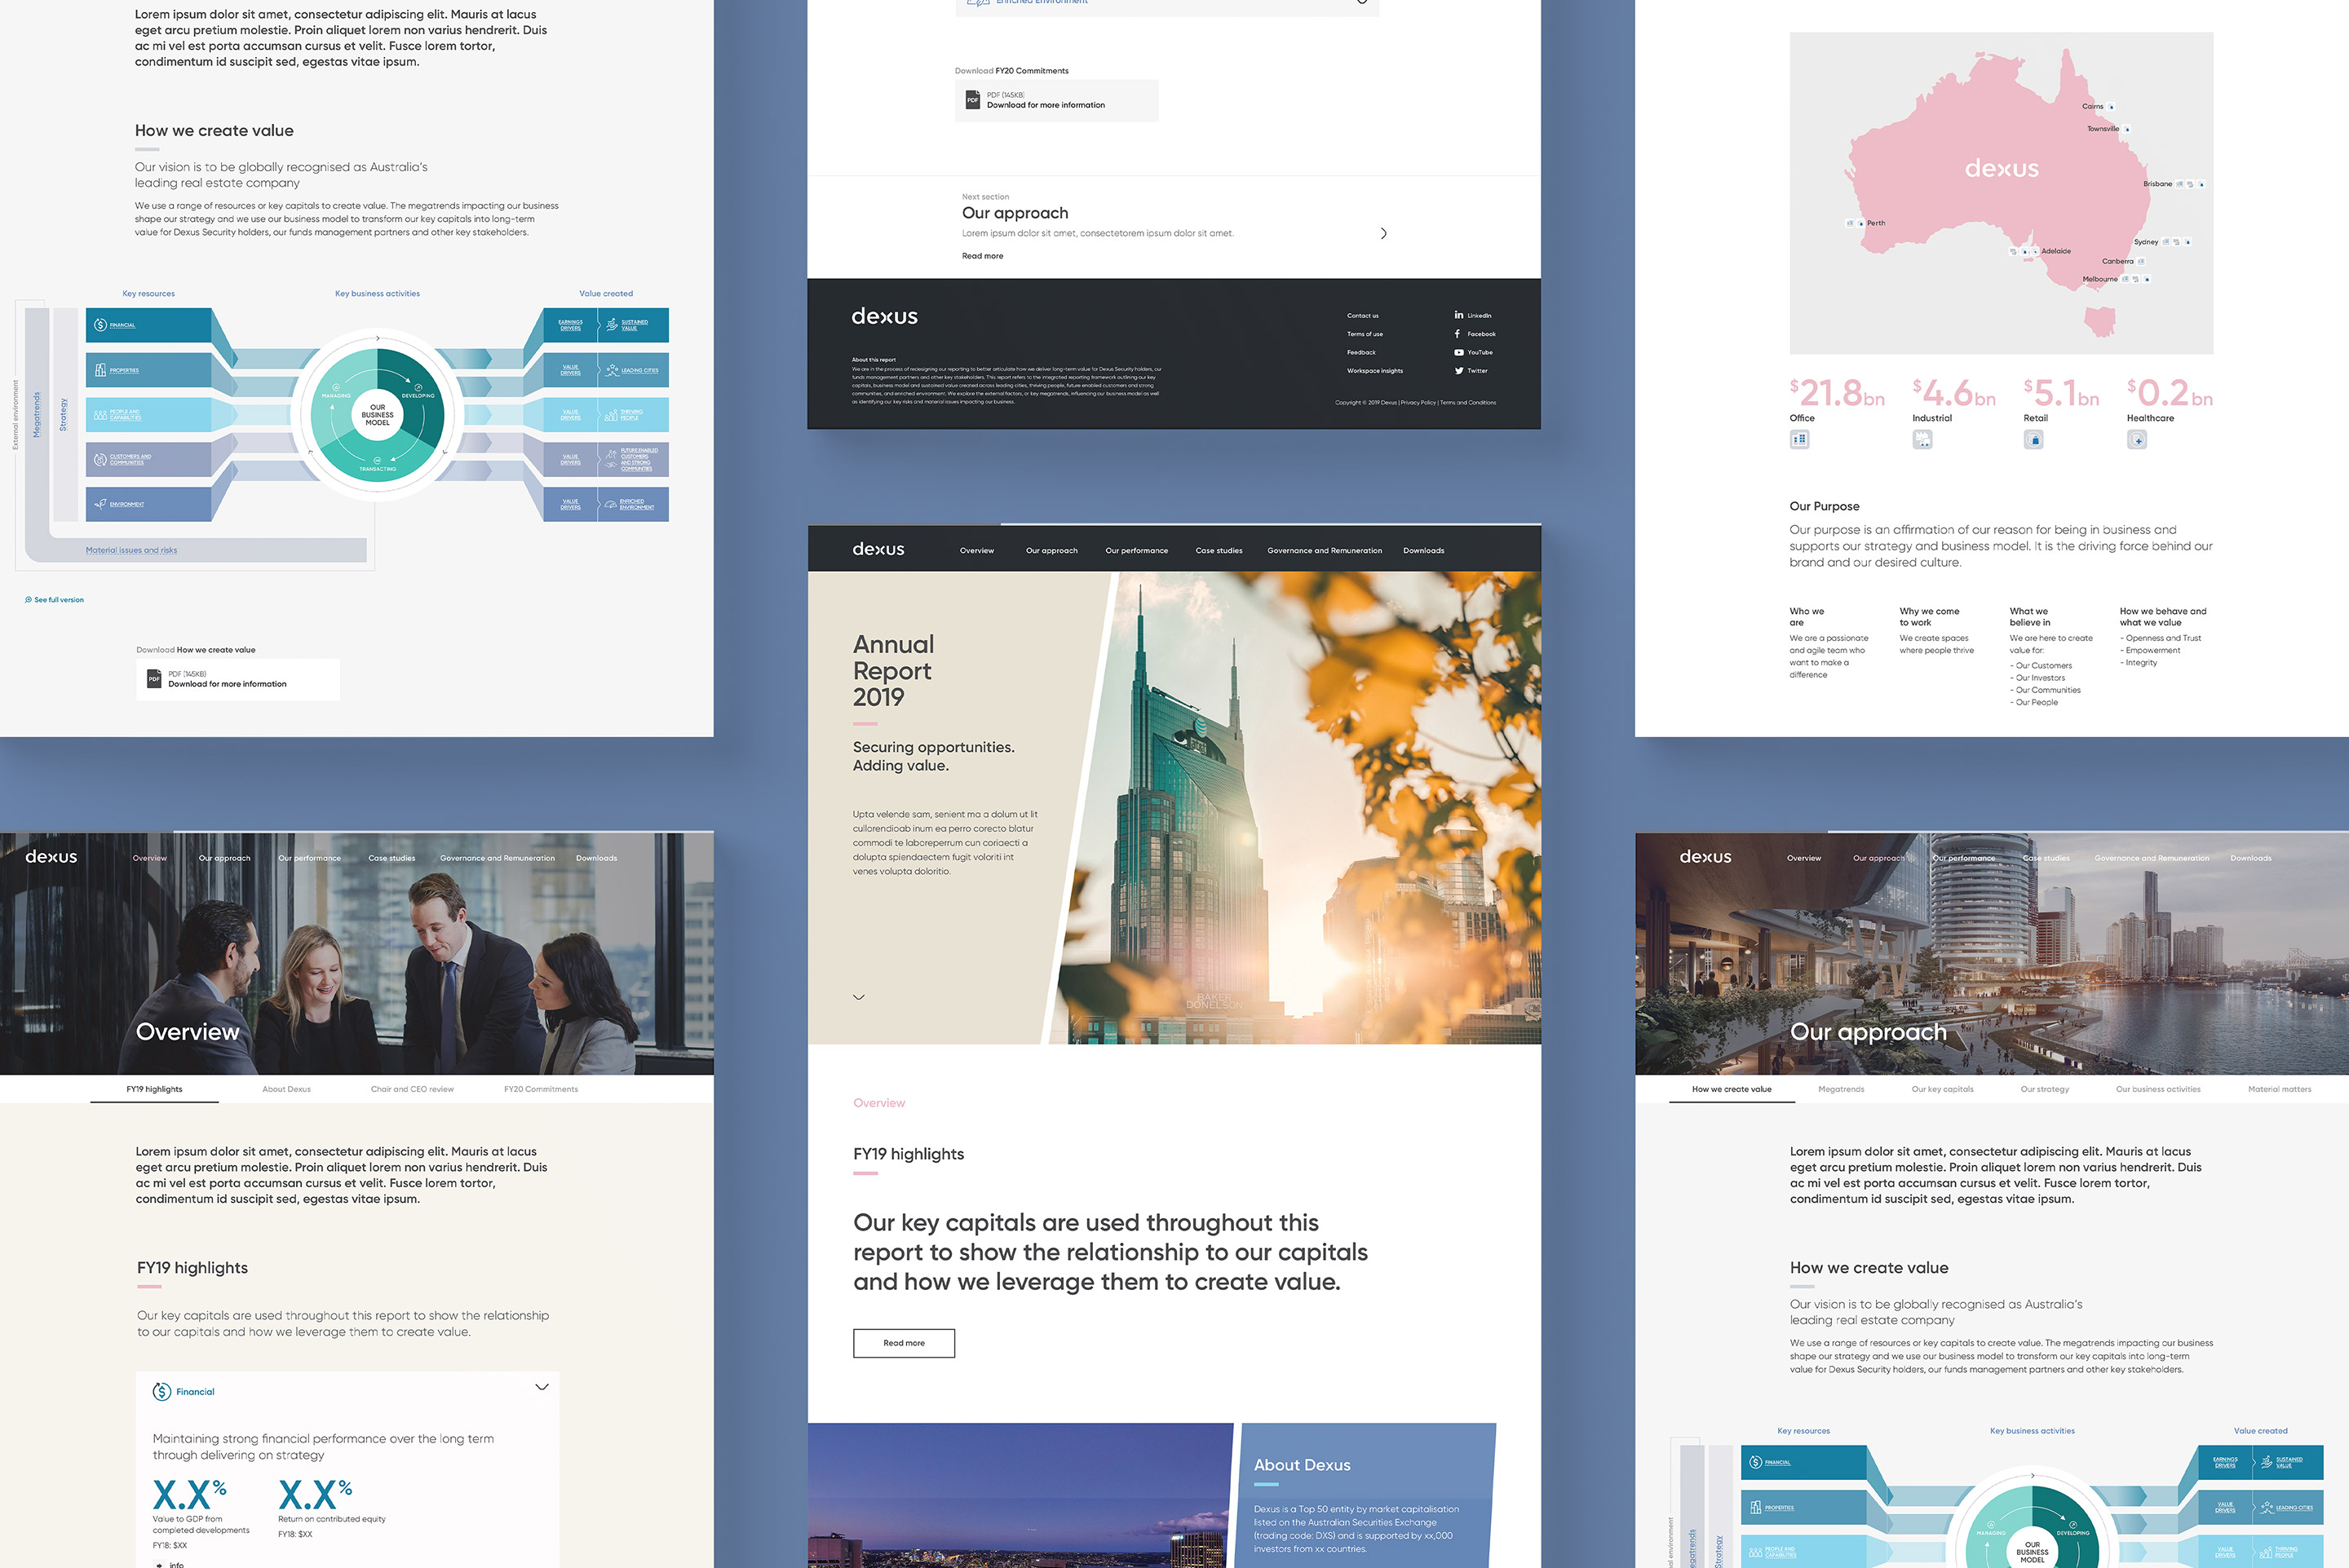 Dexus 2019 Annual Report. Online webpages design overview.